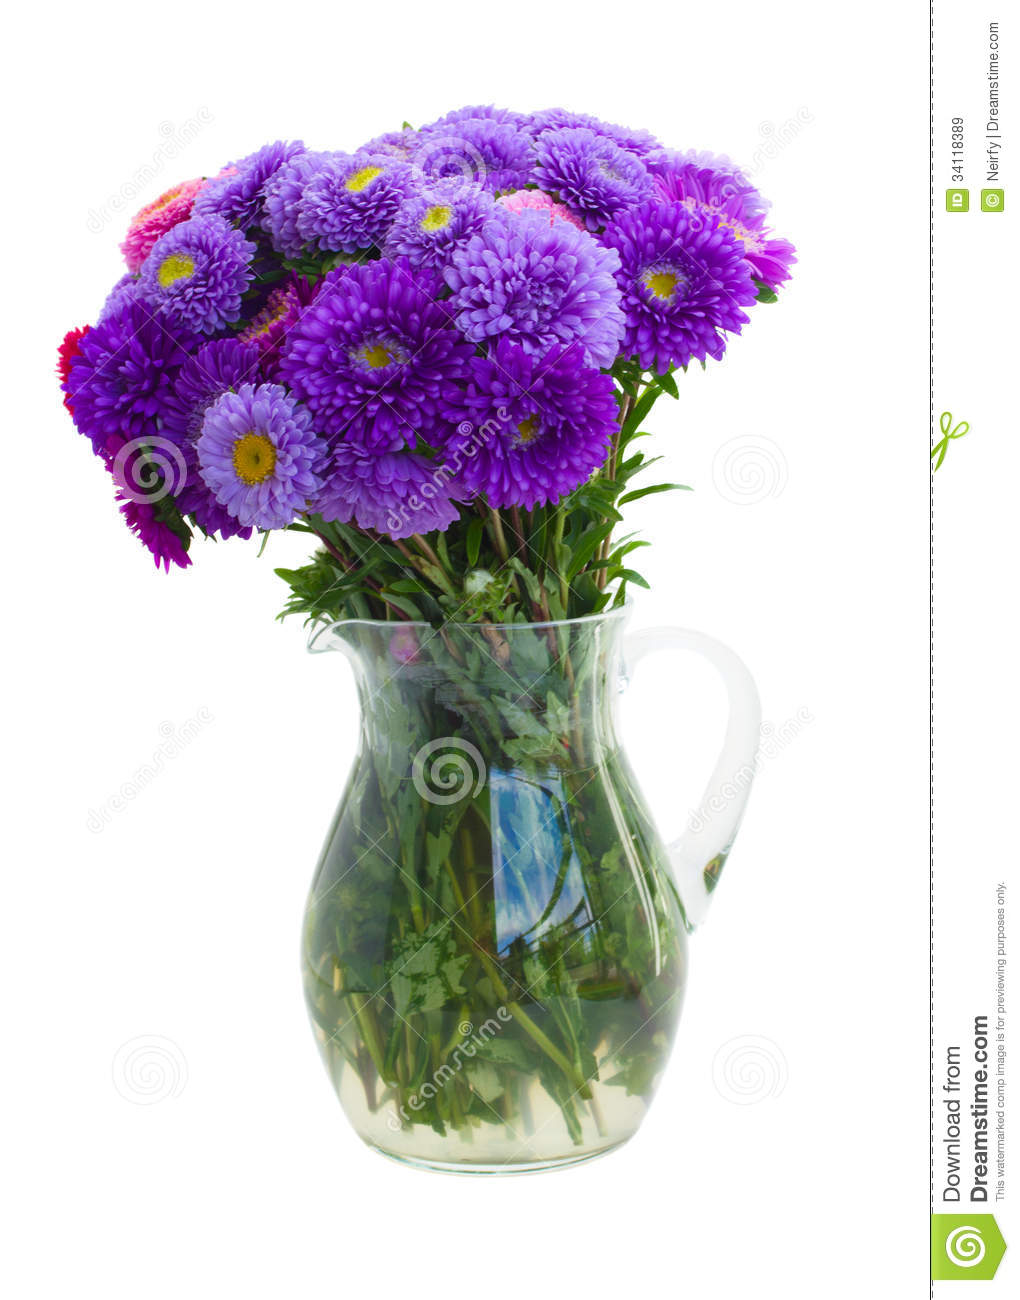 bouquet of purple aster flowers royalty free stock images  image, Beautiful flower